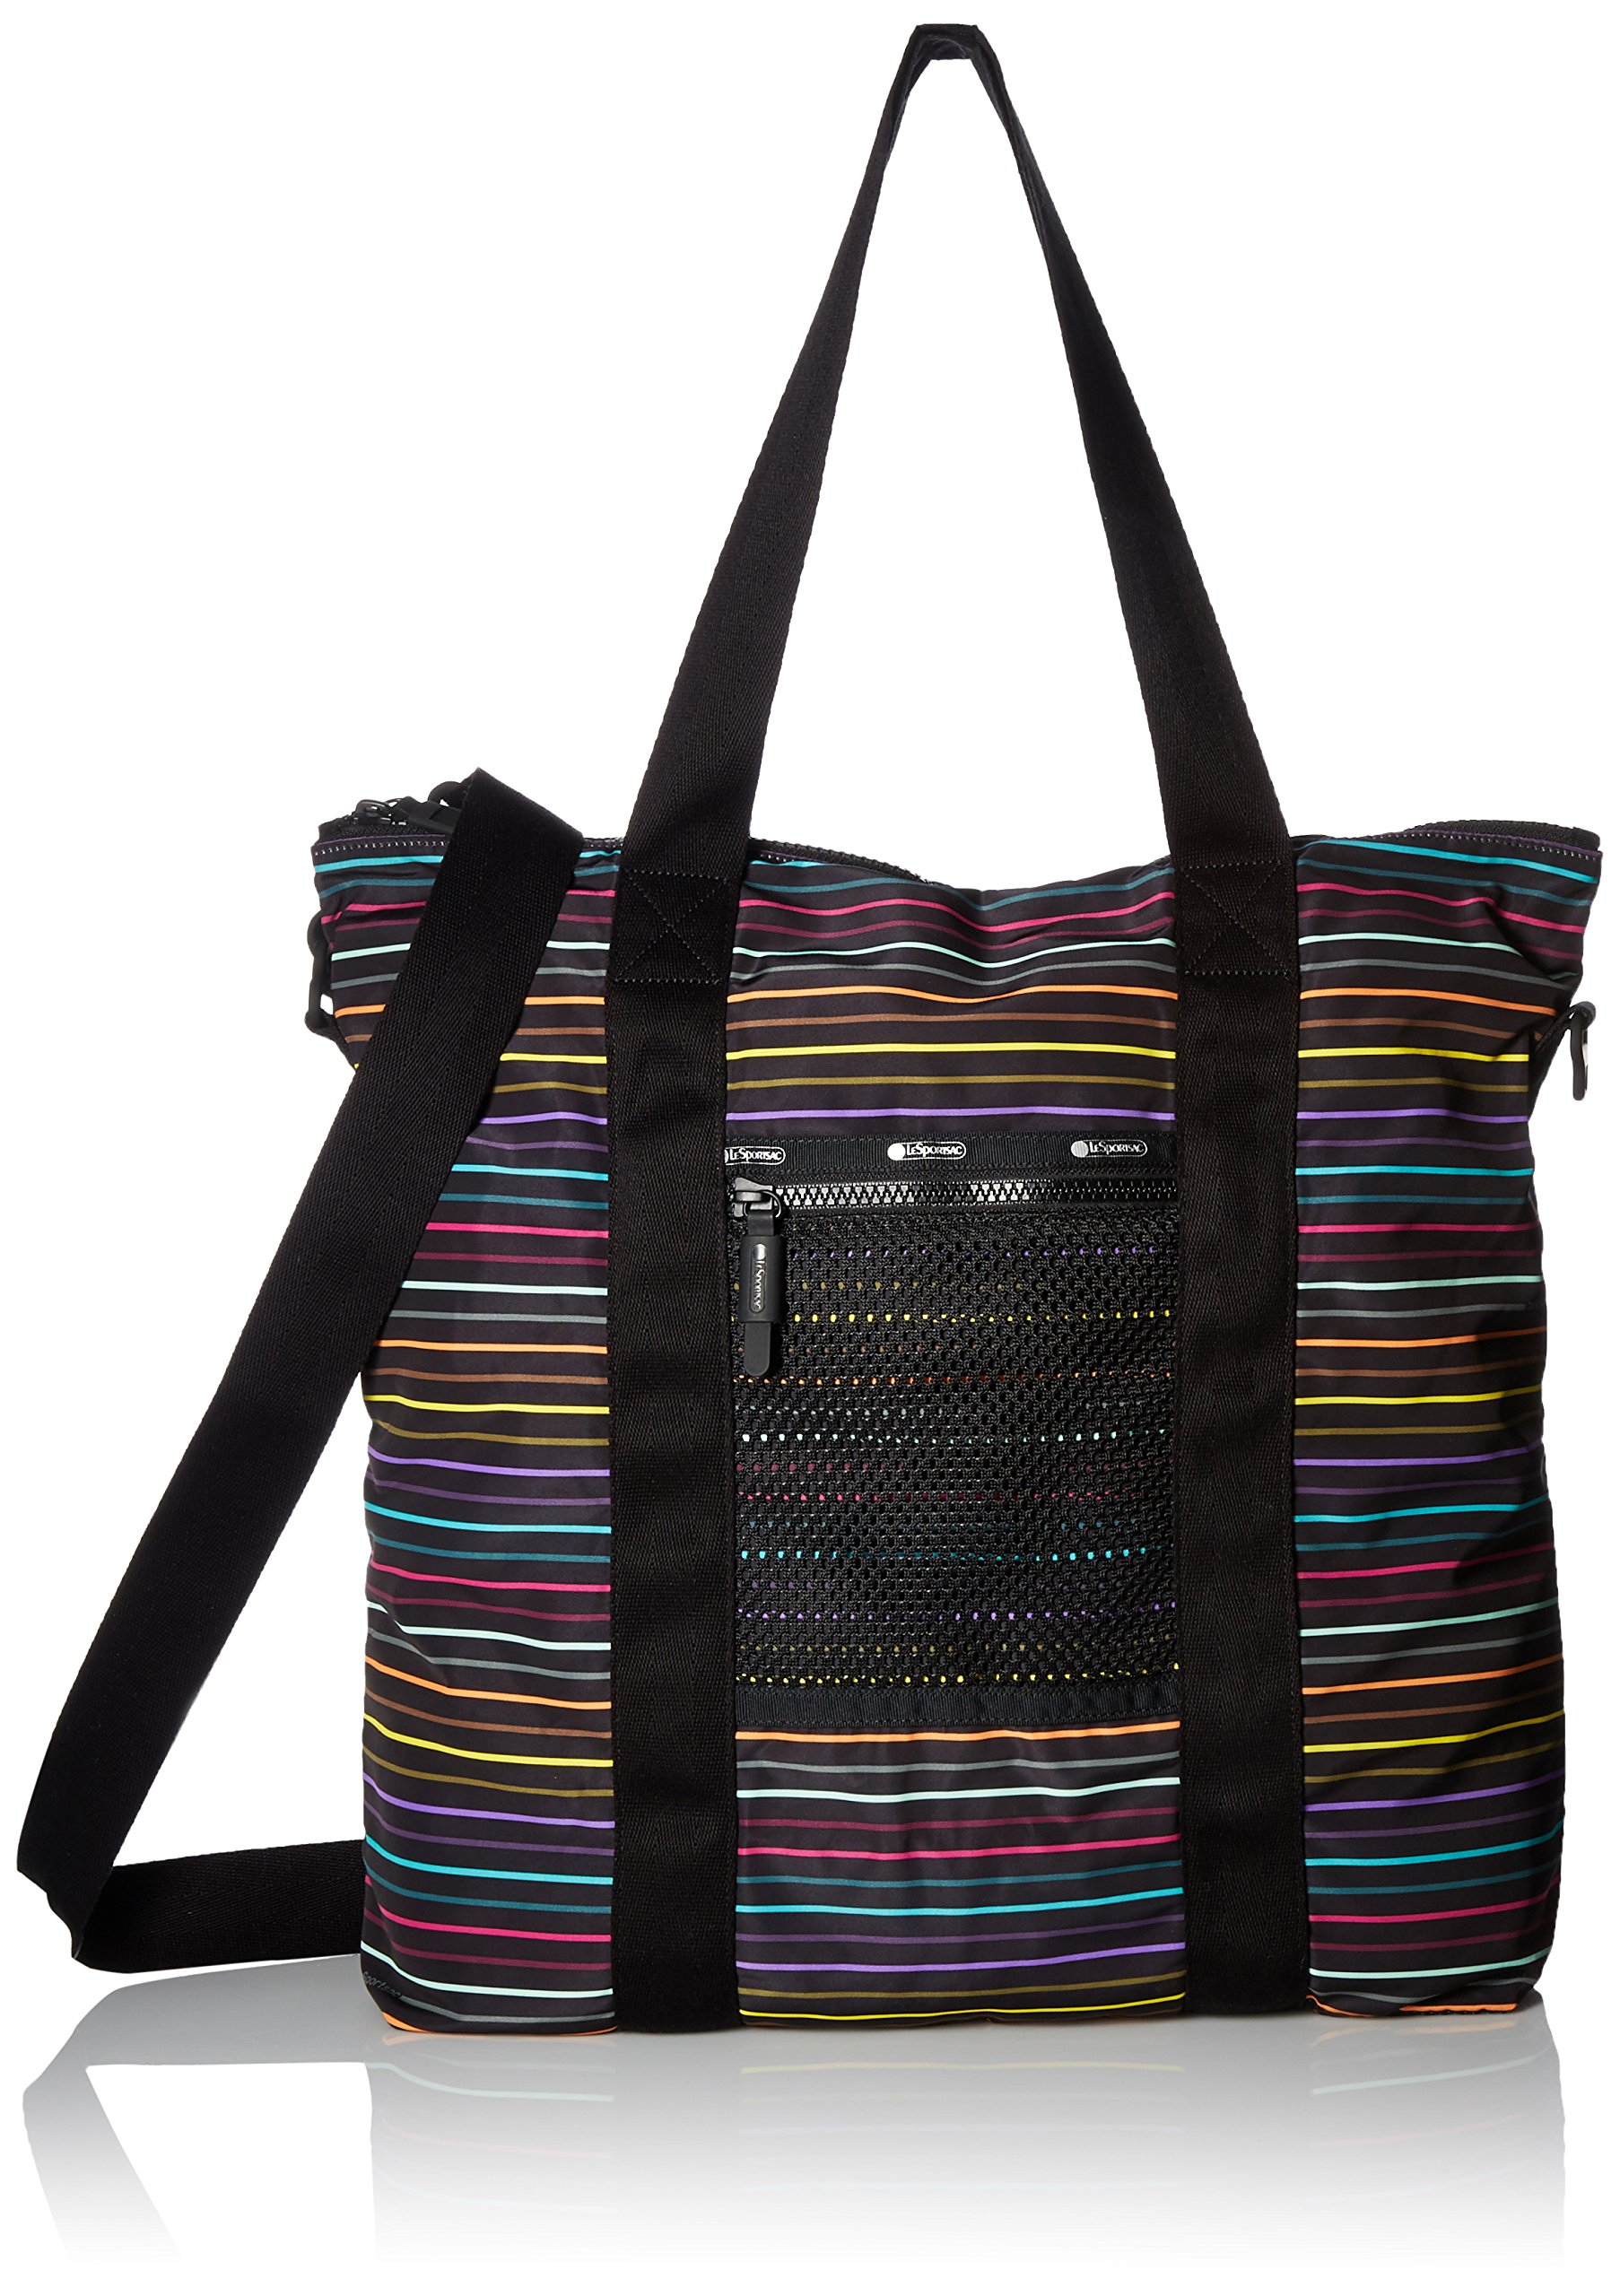 LeSportsac Global Tote, Lestripe Travel by LeSportsac